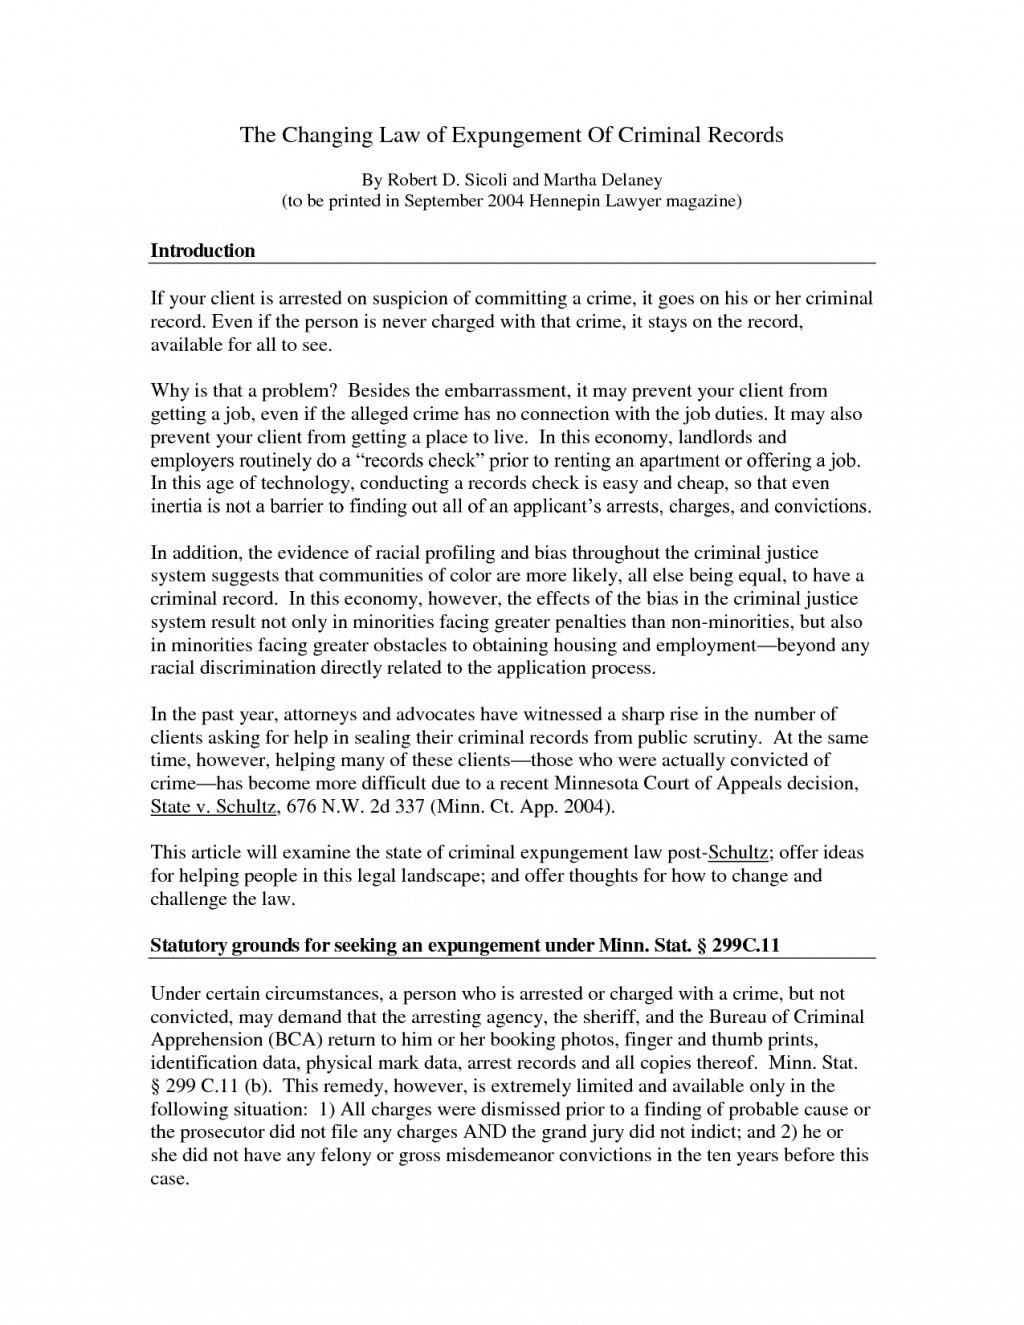 014 Essay Example Reference Letter For Friendartment Deloitteplication Character Template Buzzle Sample Format Black Paperartmentartmentartment Kitchen Design Your Own Dallas District Awful Argumentative Persuasive 6th Grade Pdf Download Large